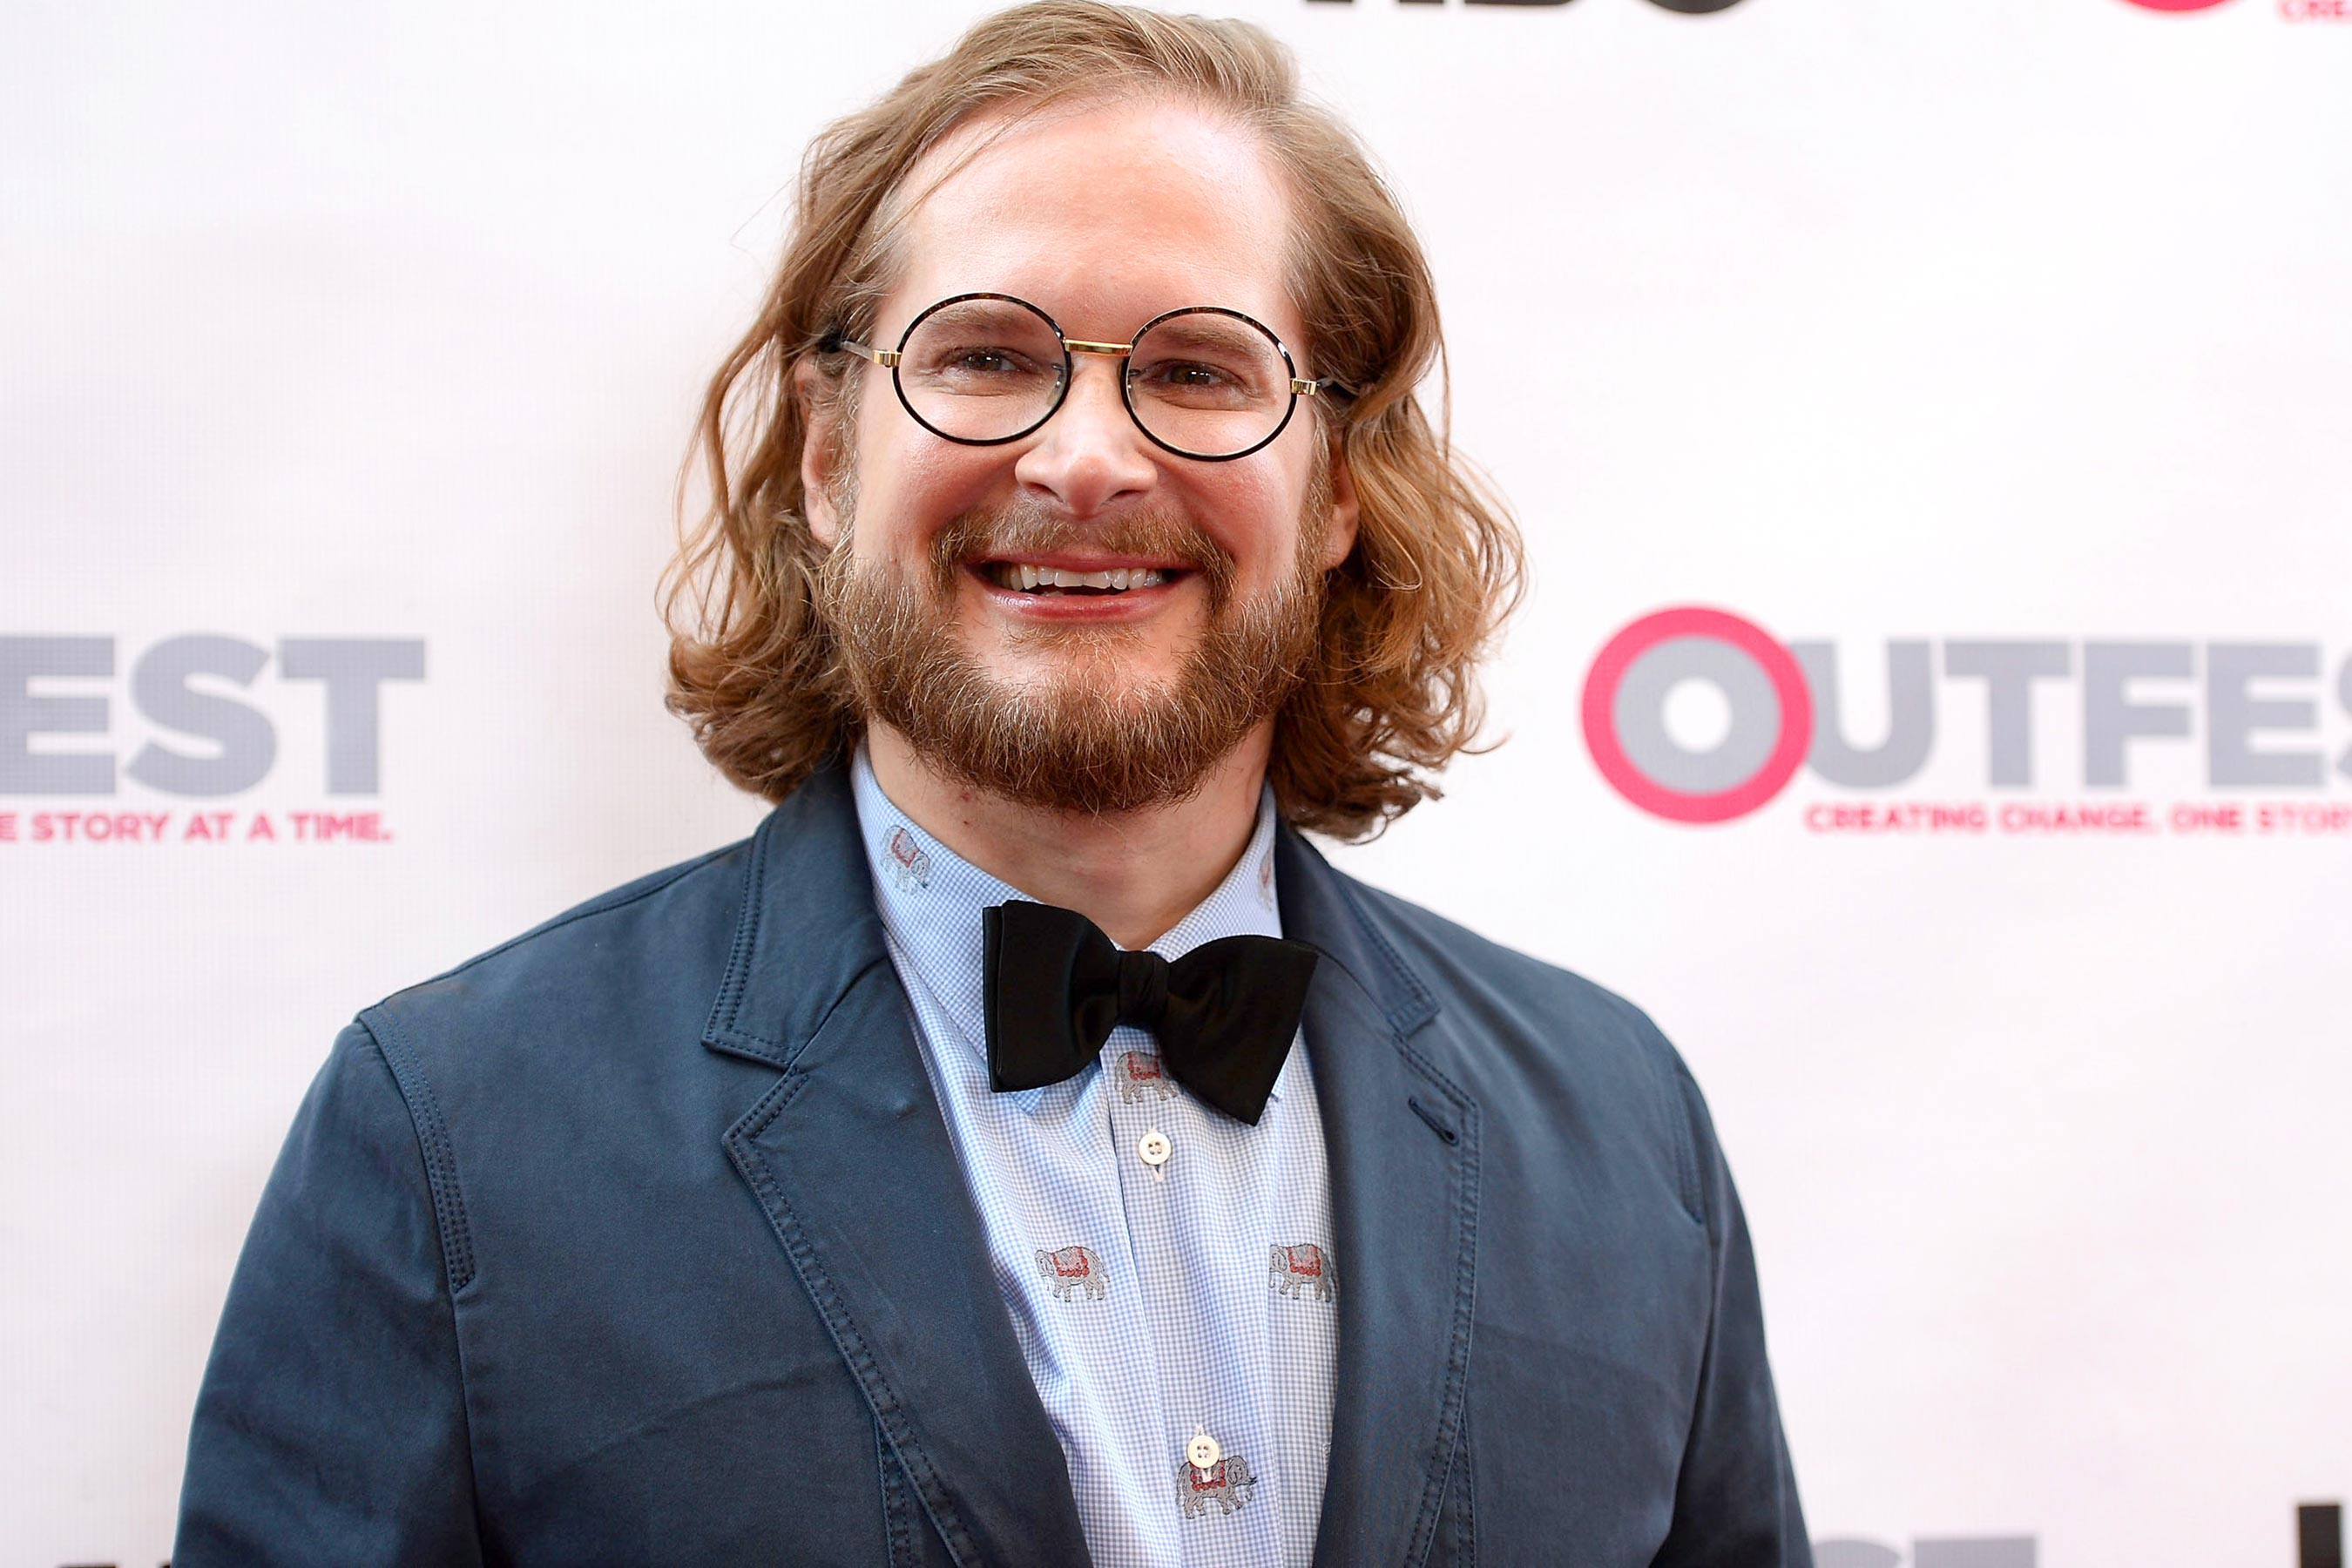 Apple's Amazing Stories: Bryan Fuller out as showrunner